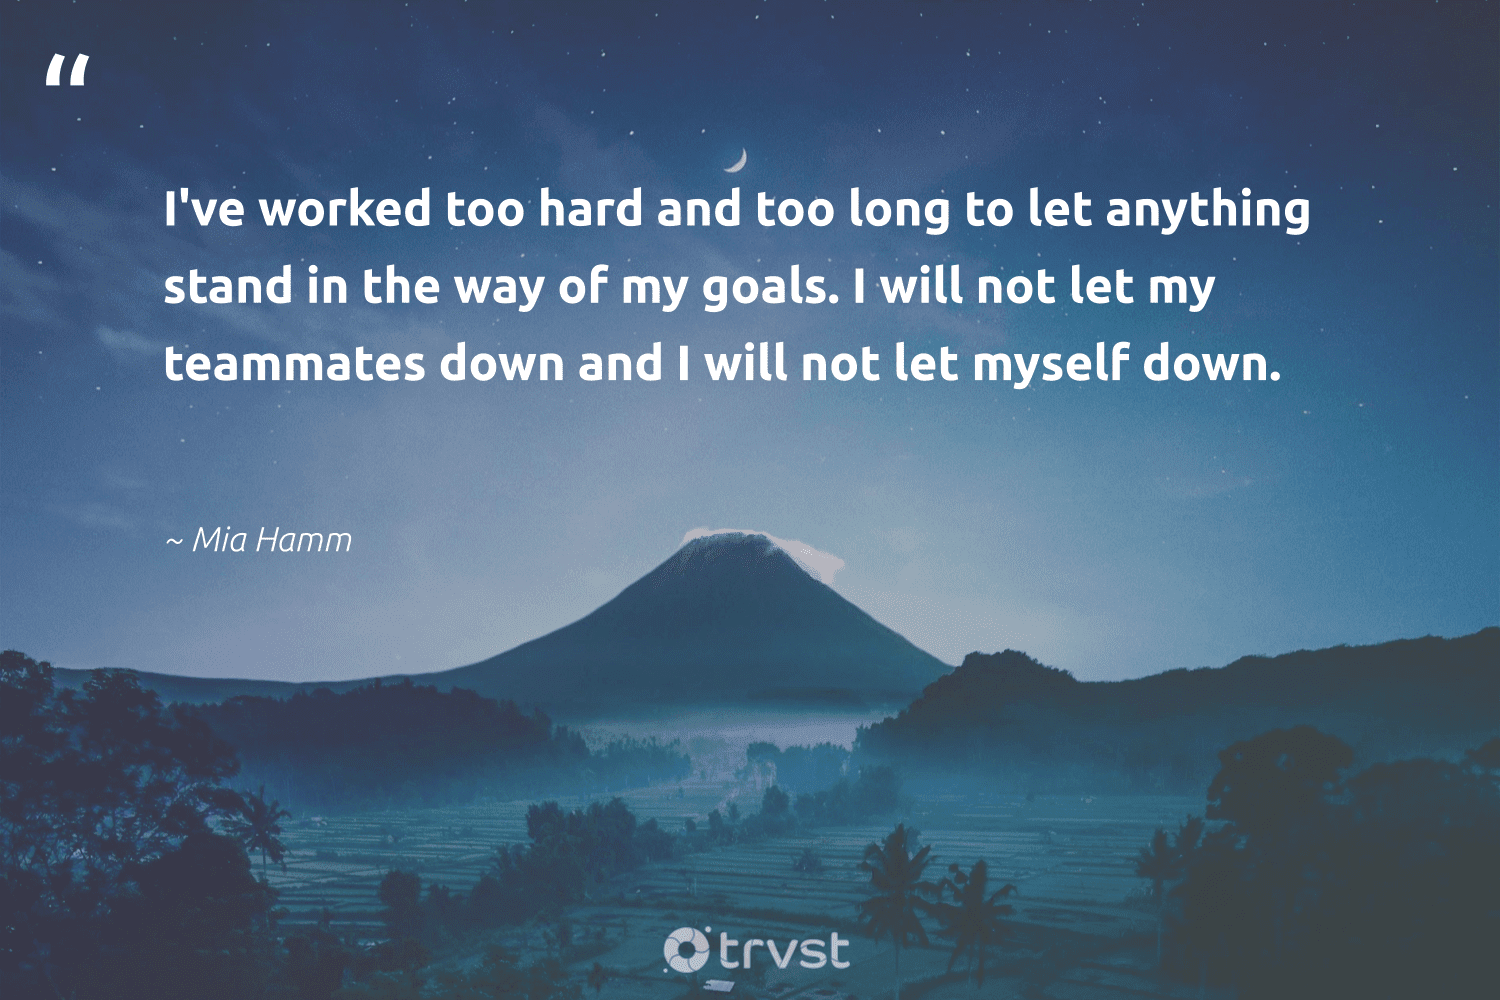 """""""I've worked too hard and too long to let anything stand in the way of my goals. I will not let my teammates down and I will not let myself down.""""  - Mia Hamm #trvst #quotes #goals #mindfulness #futureofwork #mindset #gogreen #creativemindset #nevergiveup #togetherwecan #socialchange #motivation"""